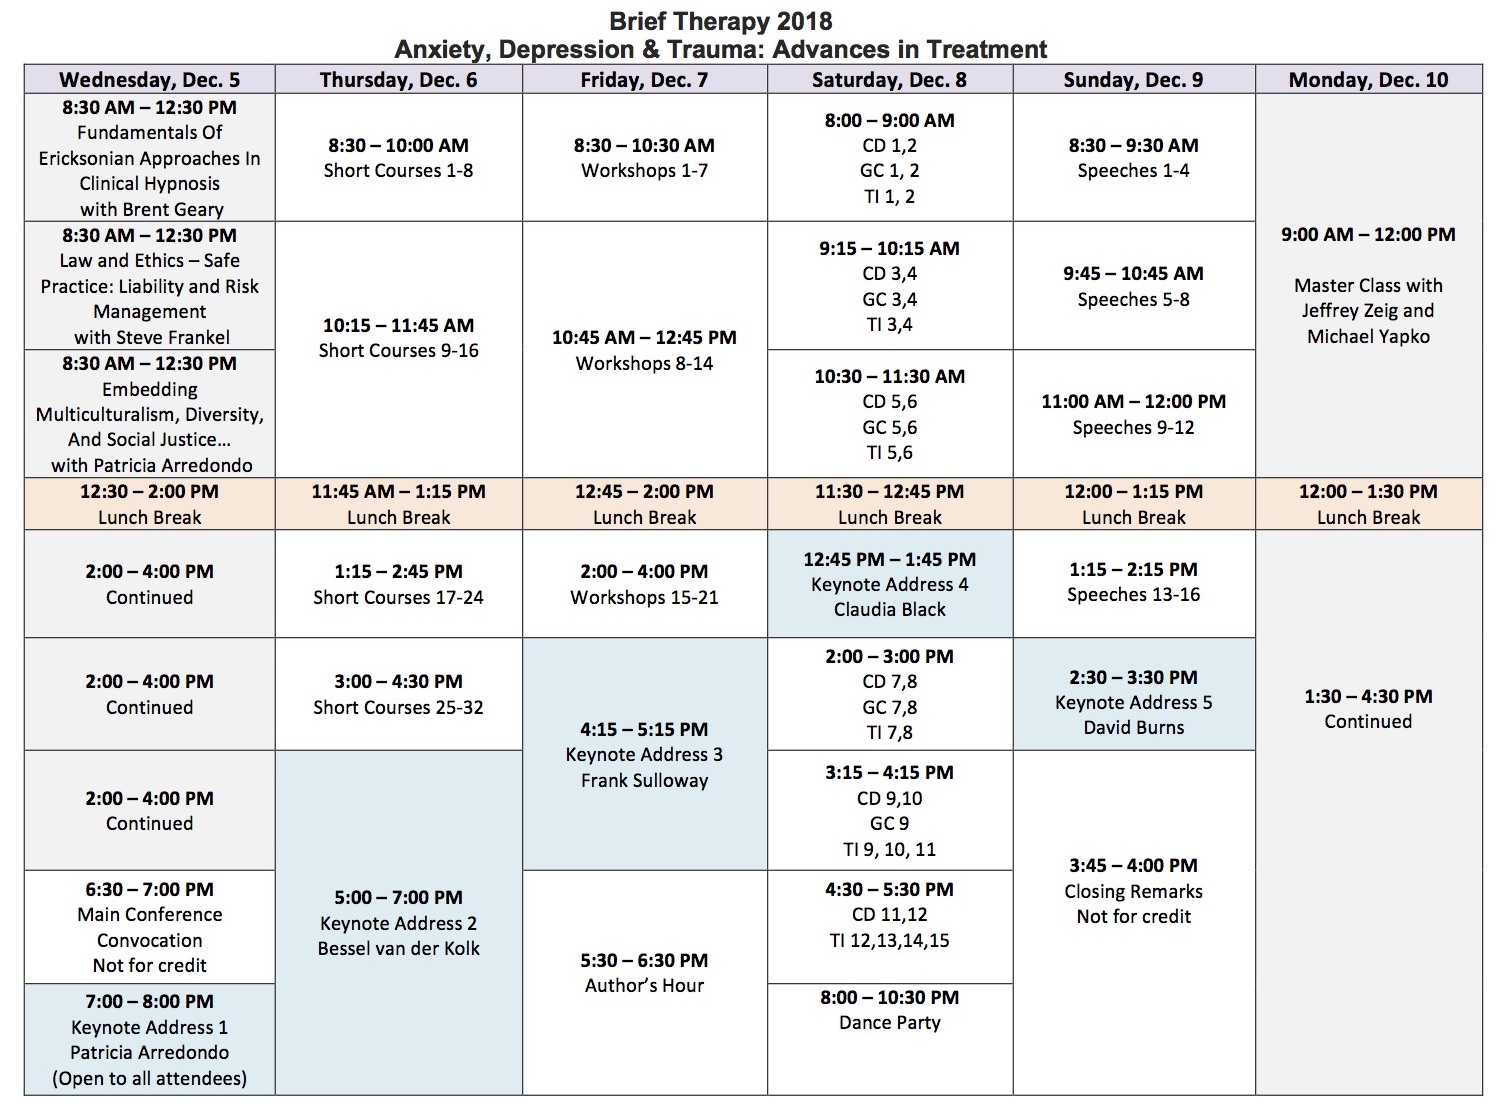 Brief Therapy Schedule at a Glance